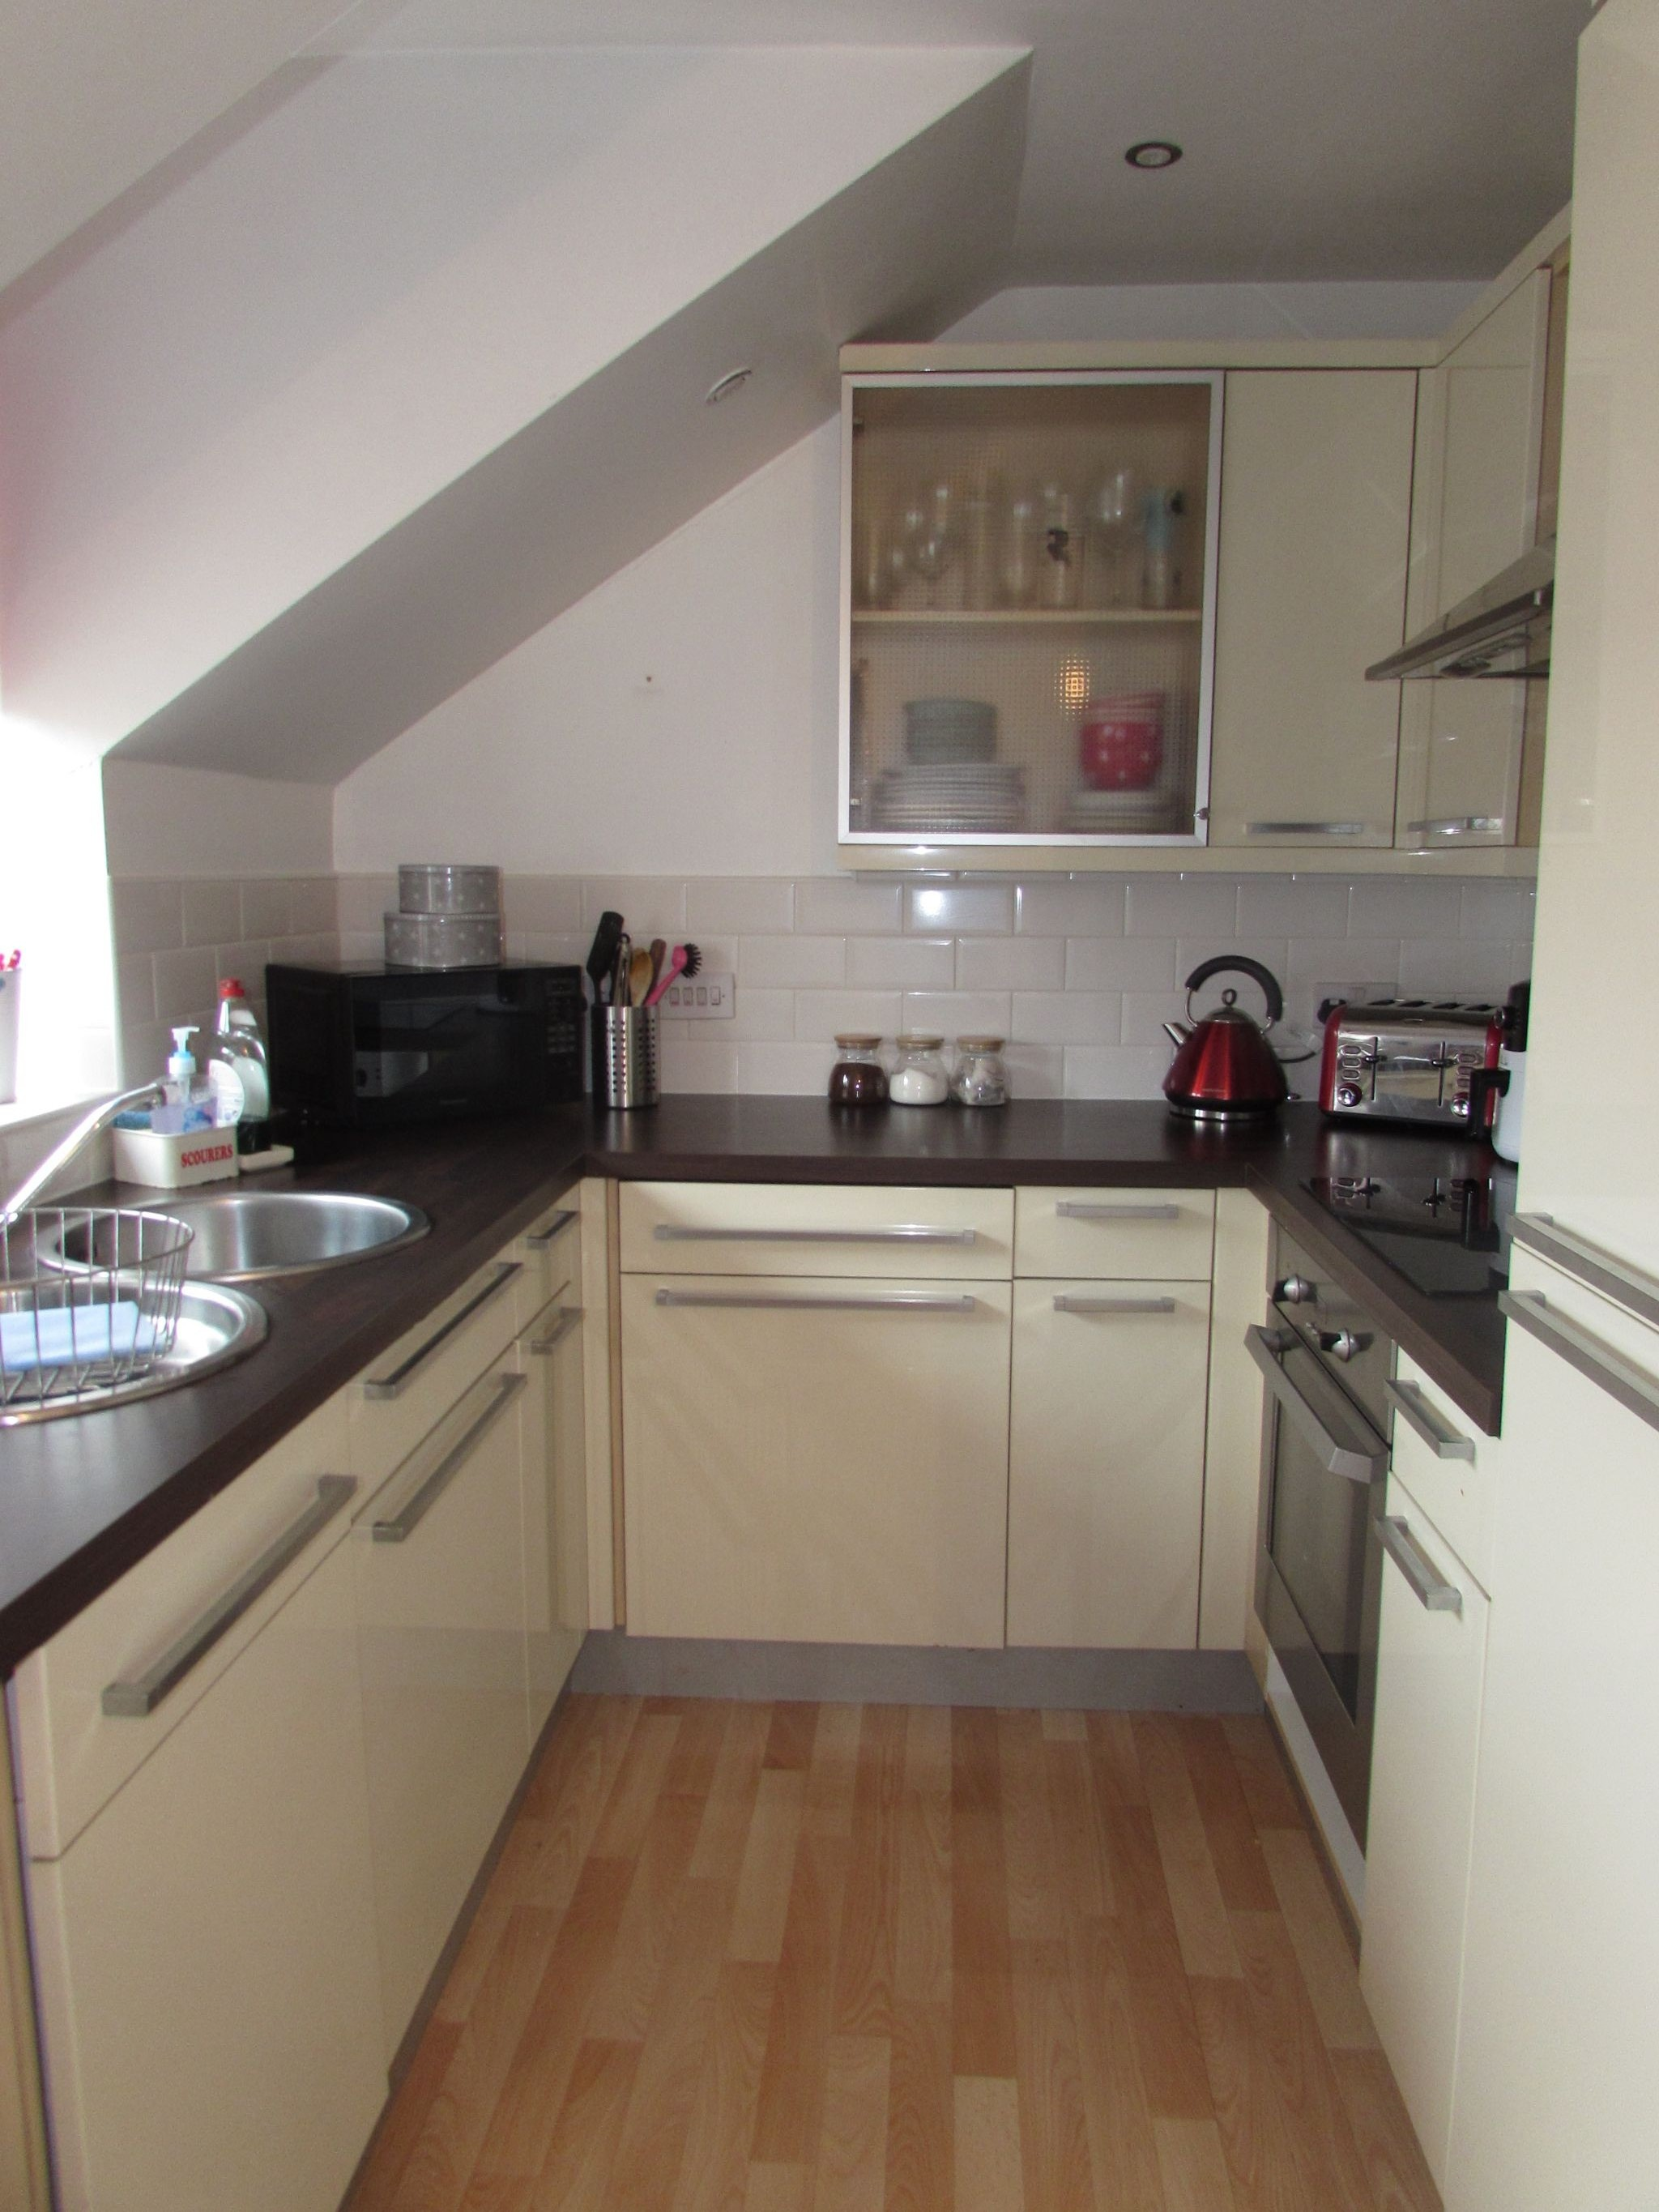 1 Bedroom Shared Flat/apartment To Rent - Photograph 9